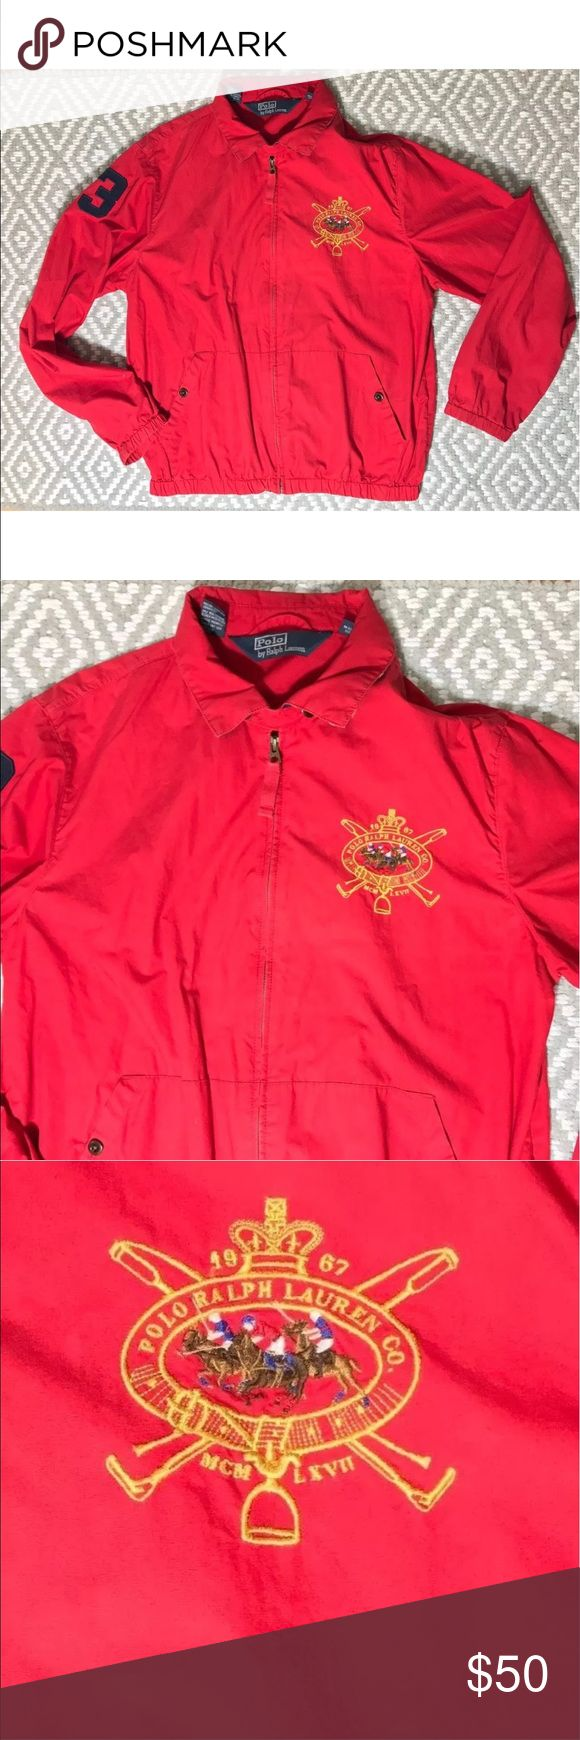 """Vintage polo Ralph Lauren red jacket with crest Vintage Ralph Lauren Polo Jacket Very Lightweight 100% cotton Zips up the front Rugby stripes under the collar Embroidered large crest on the front 3 on sleeve Elastic sleeves and around bottom hem Measurements (flat/unstretched)  Under arms across the back 24"""" Shoulder to hem down back 25"""" Shoulder to shoulder across the back 18.75""""  CONDITION: this item is slightly faded and has a few very light spots. It does not look new or mint. It does…"""